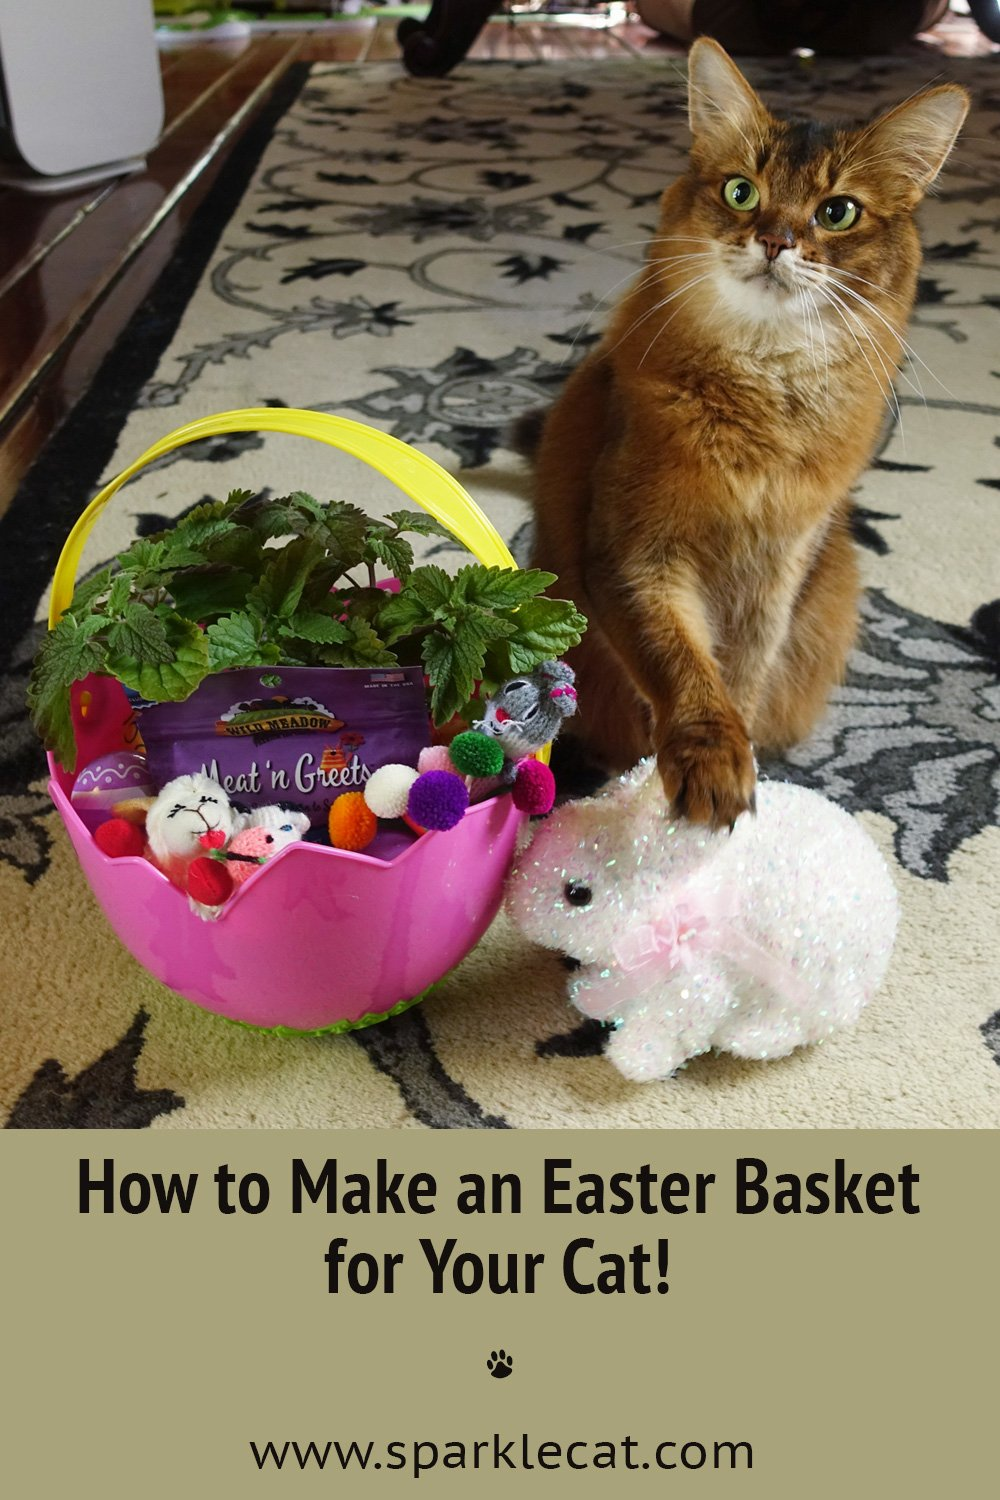 How to Make an Easter Basket for Your Cat